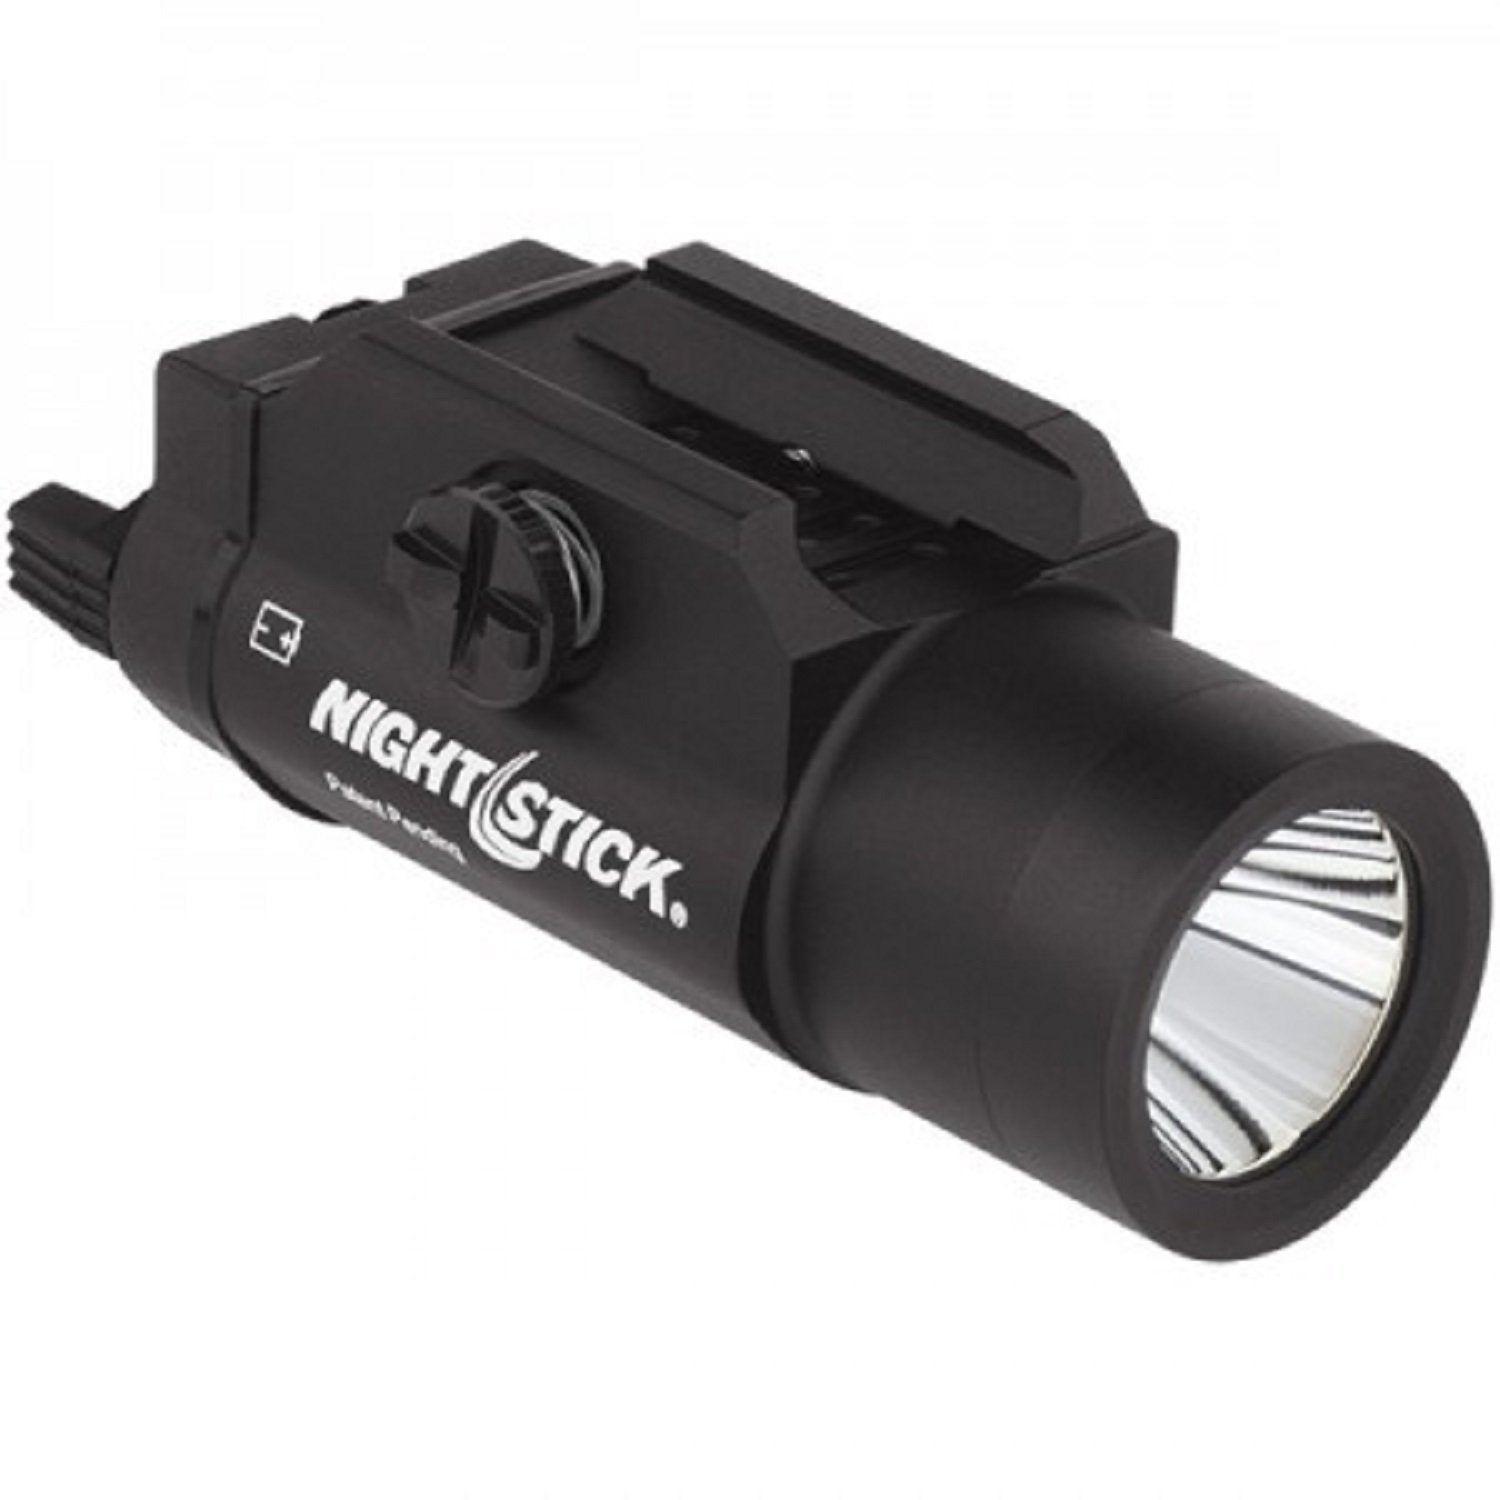 Nightstick Tactical Weapon-Mounted LED Light 350 lumens Tactical Gear Australia Supplier Distributor Dealer